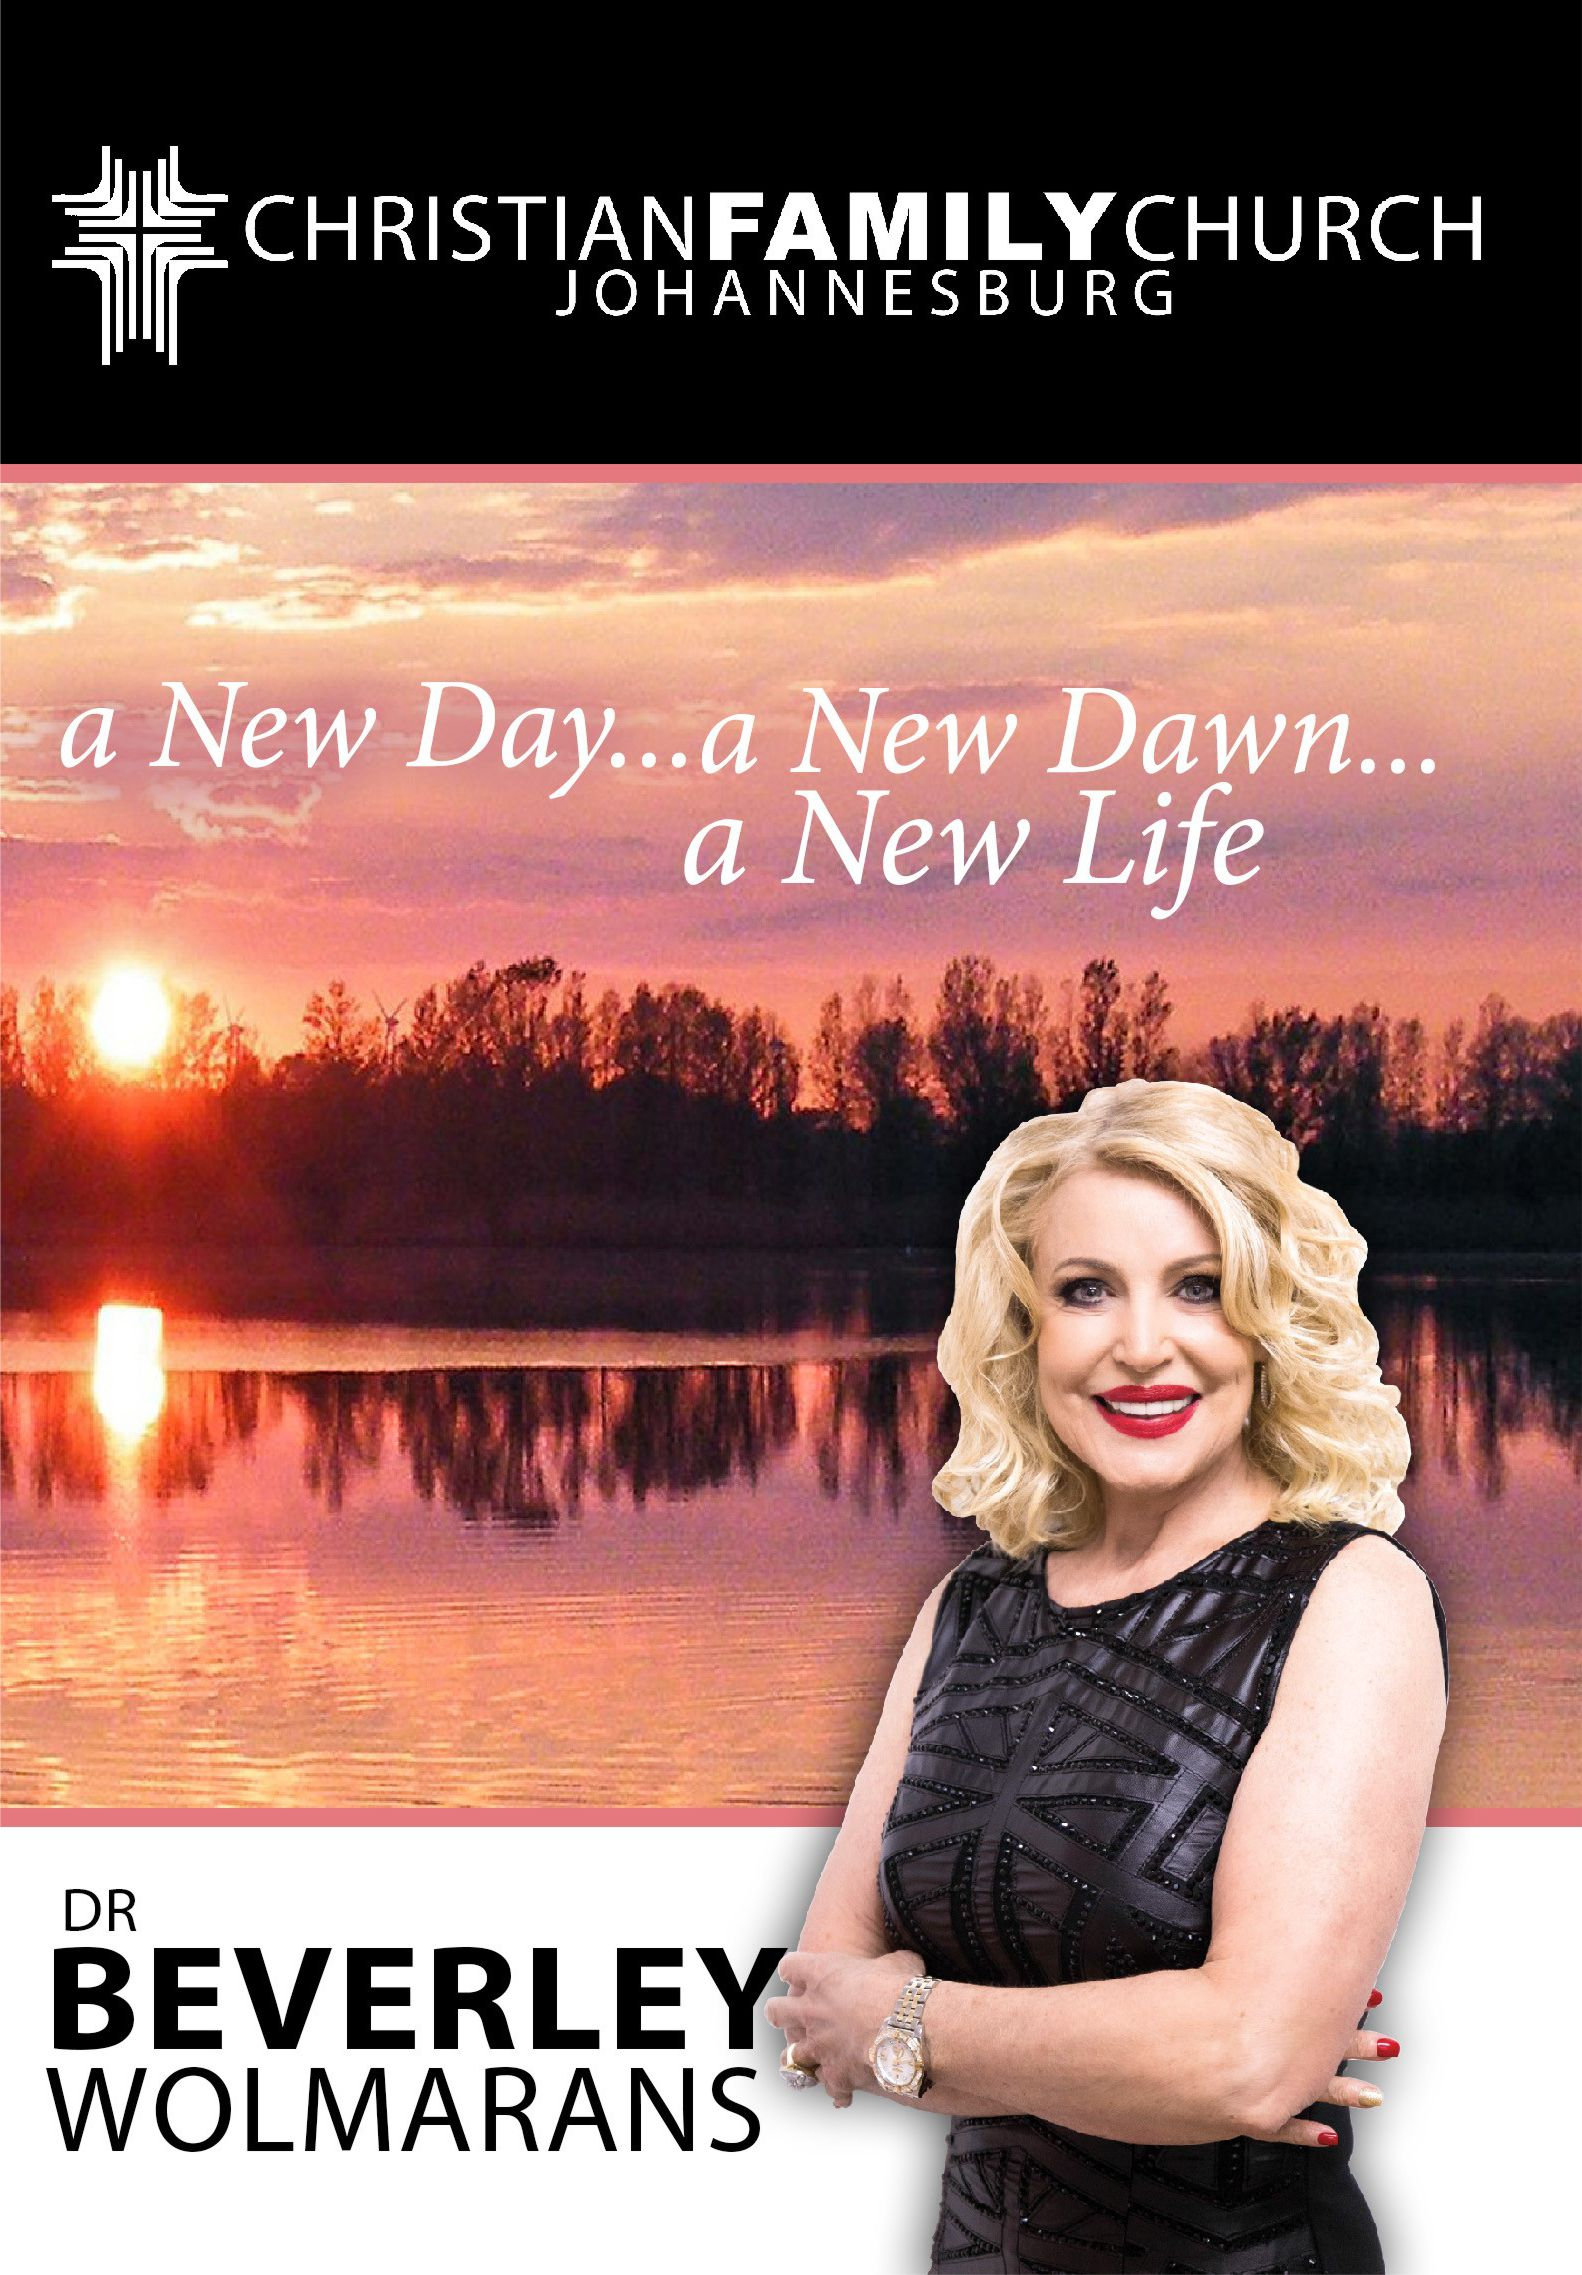 a New Day, a New Dawn, a New Life